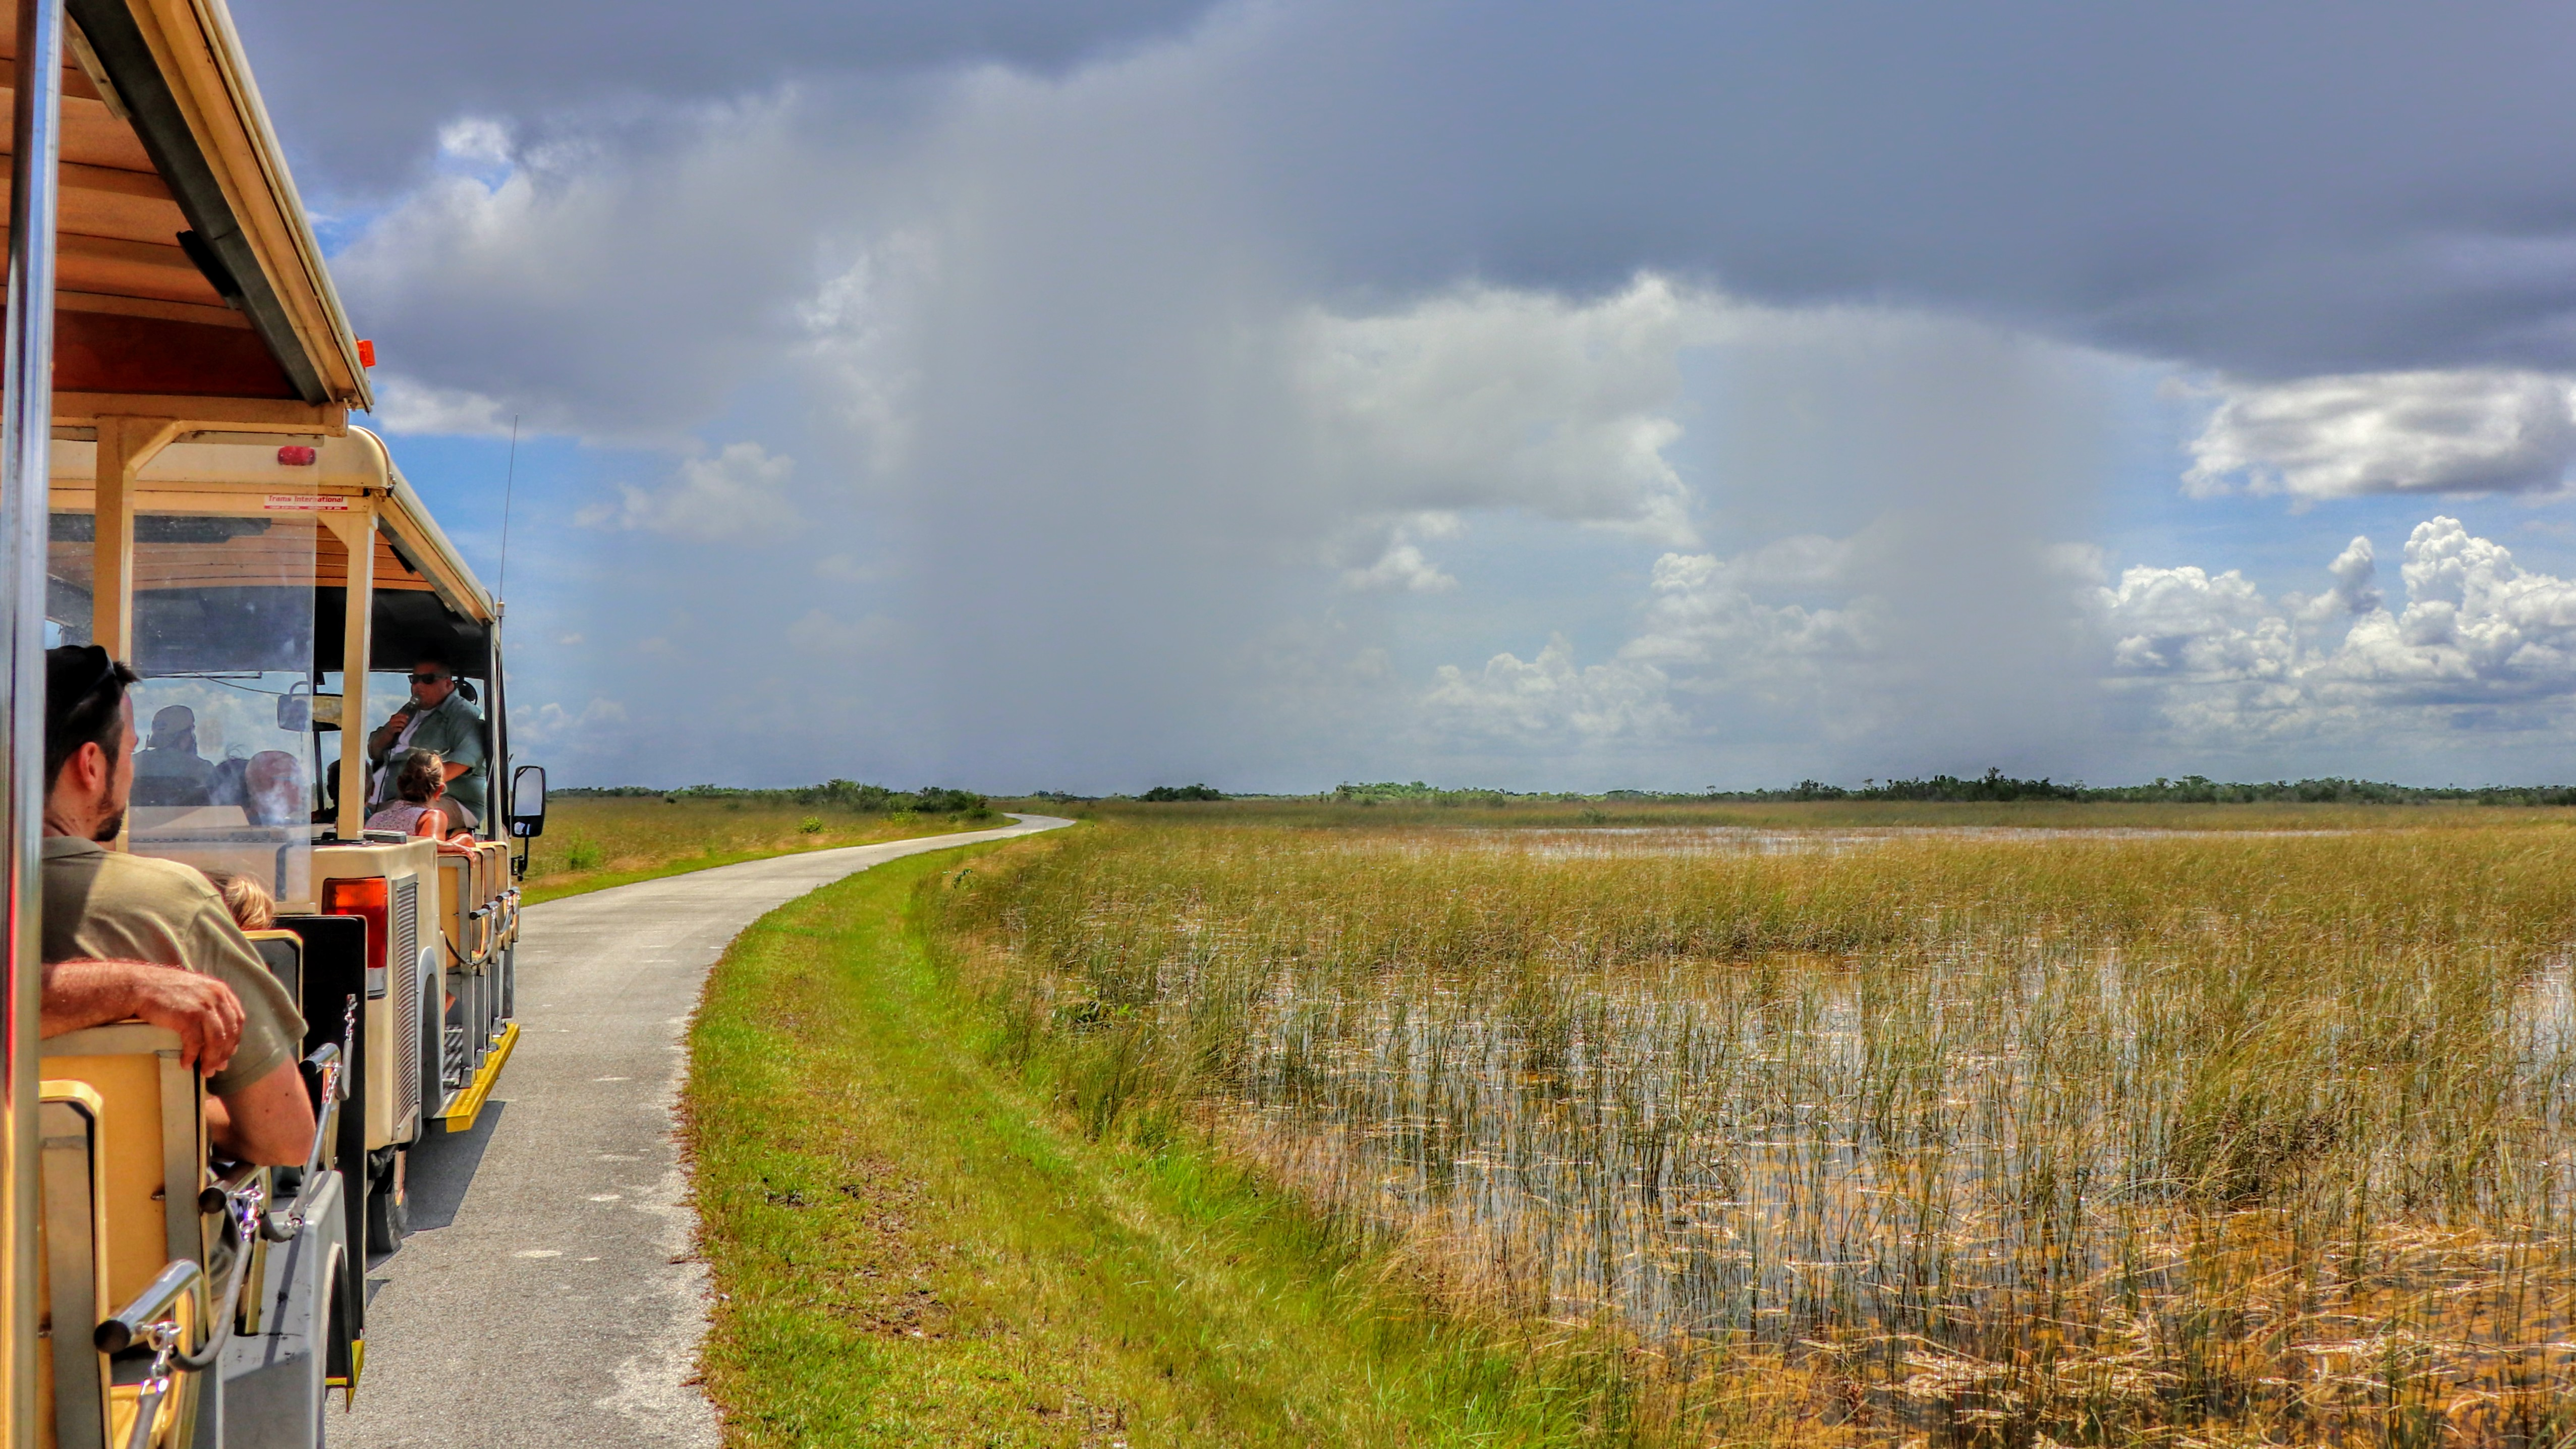 Shark Valley Tram Tours in Everglades National Park